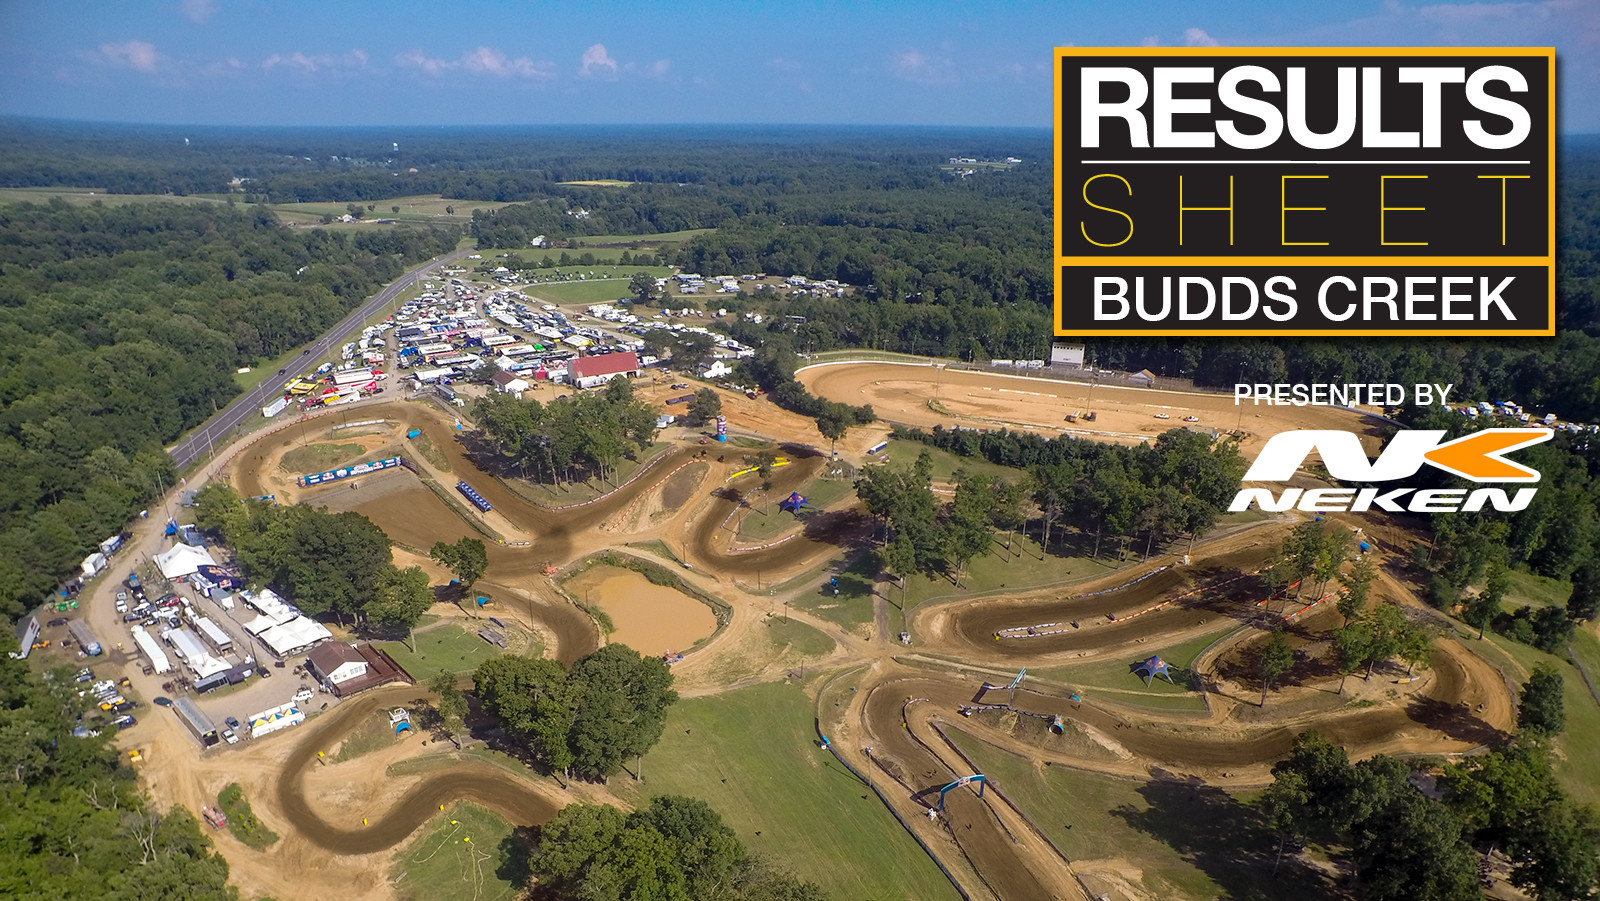 Results Sheet: Budds Creek